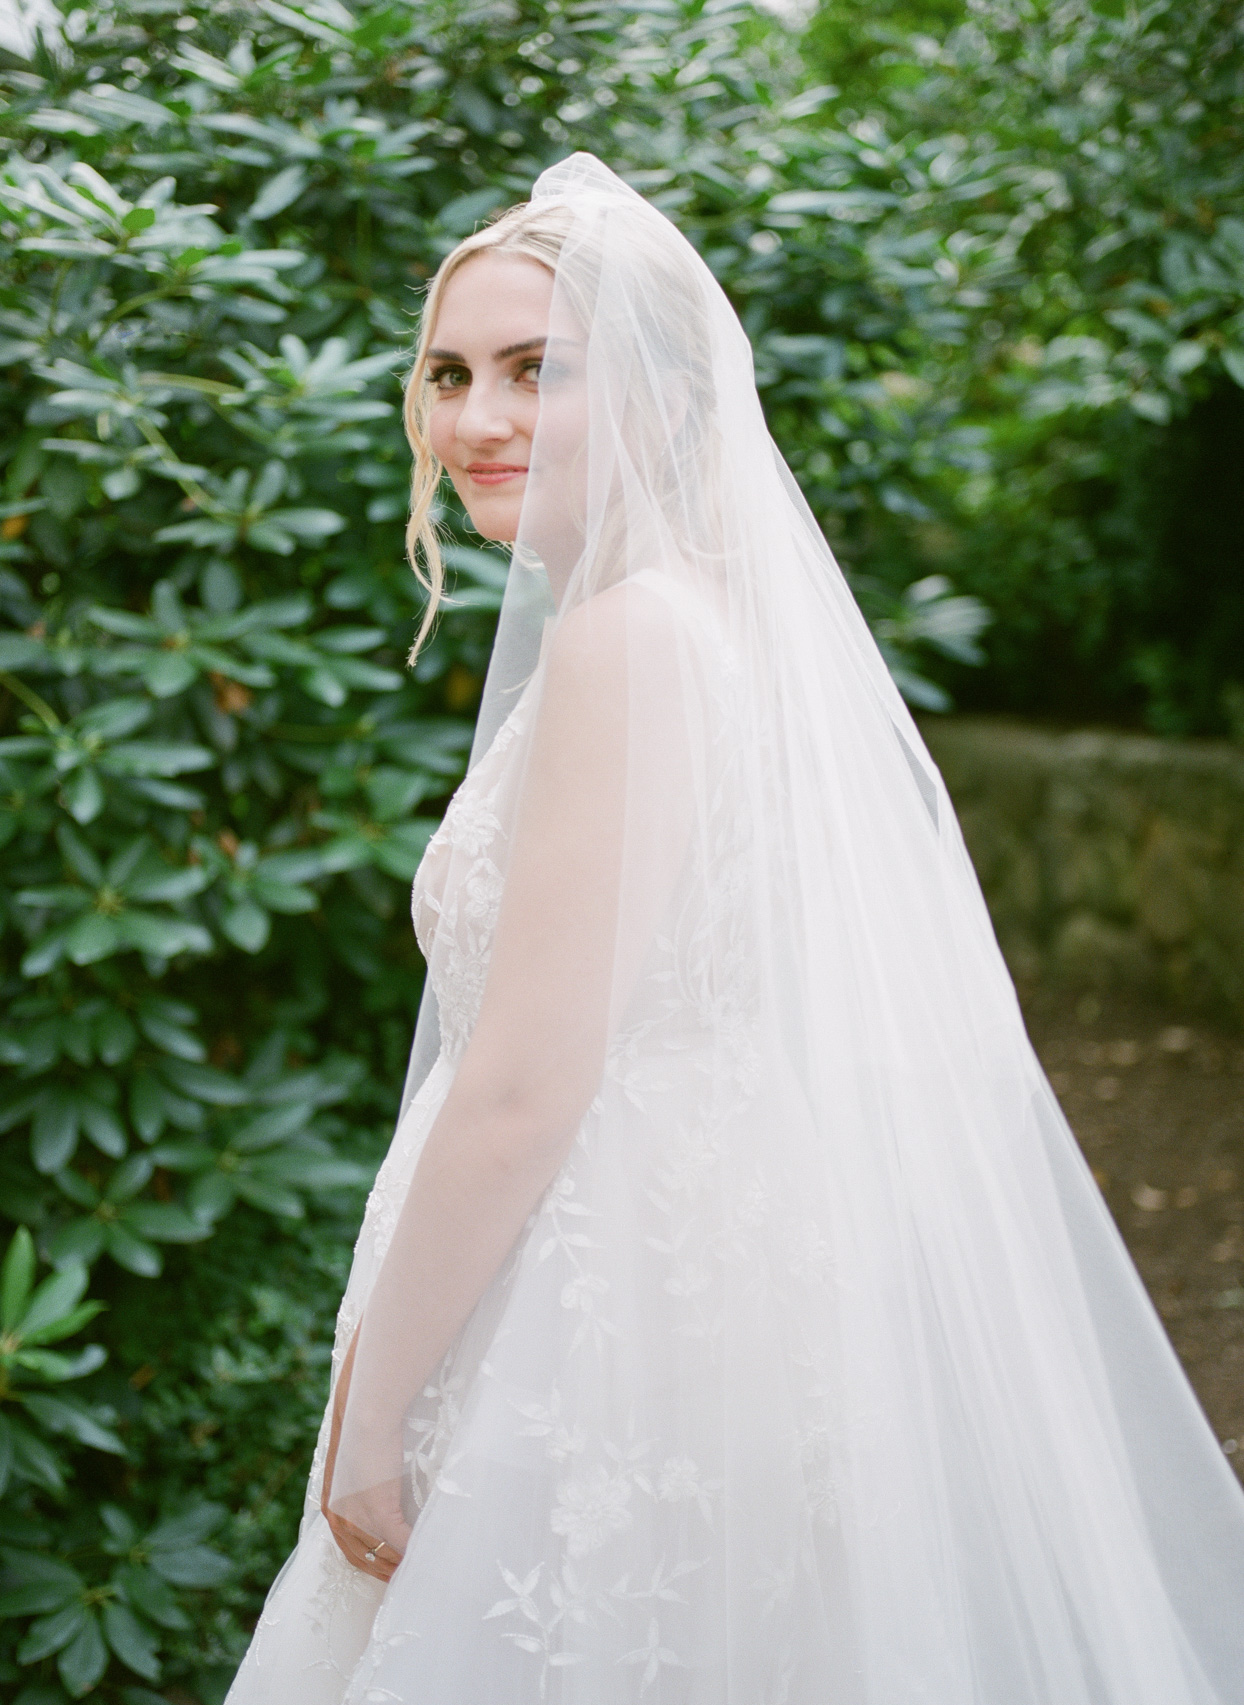 wedding bride side portrait in white in front of greenery wall